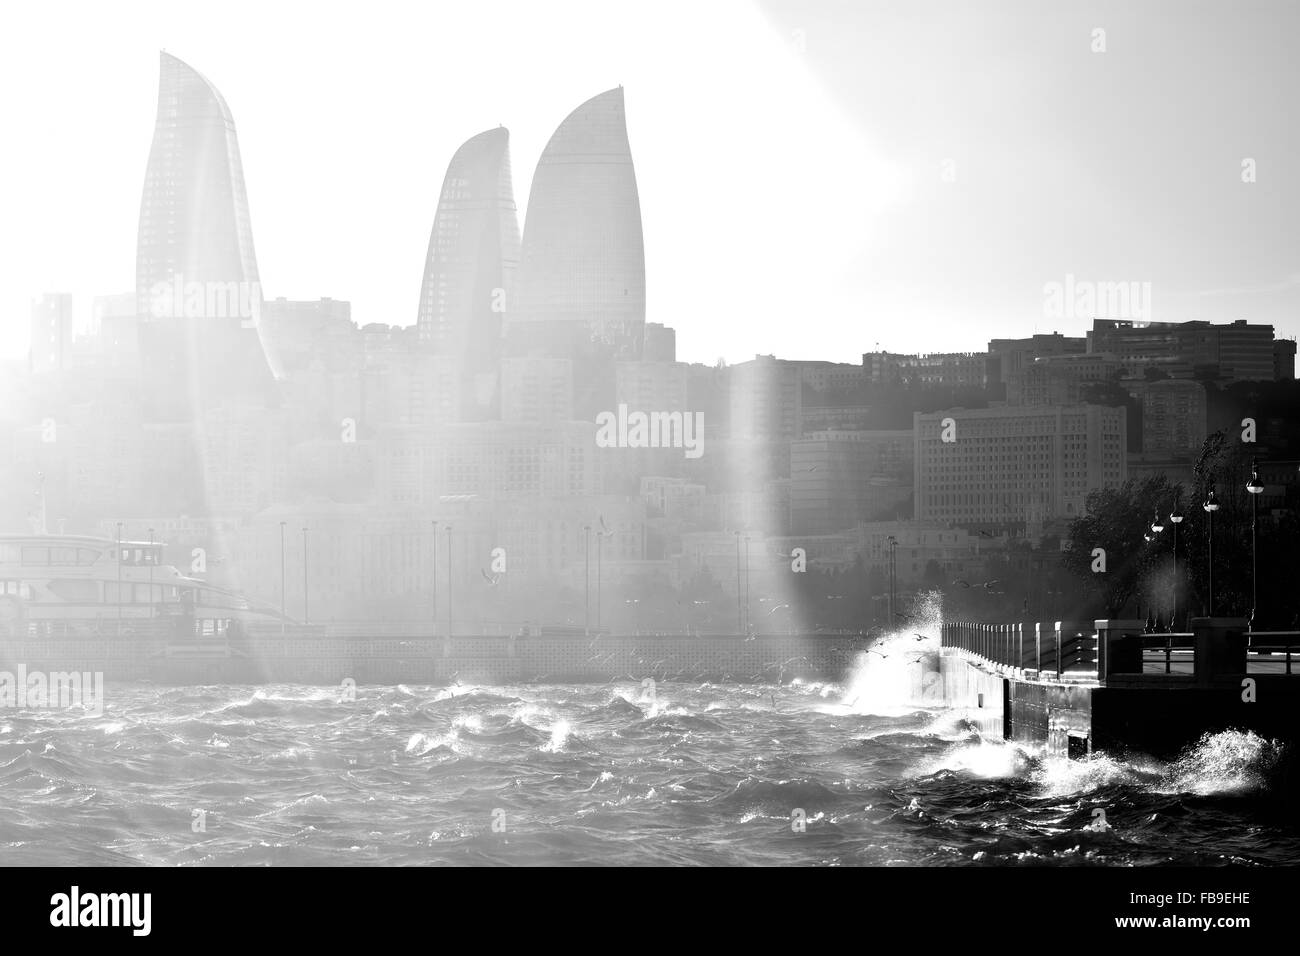 Stormy Caspian Sea with waves breaking against the Bulvar. Flare over Flame Towers in Baku, capital of Azerbaijan - Stock Image